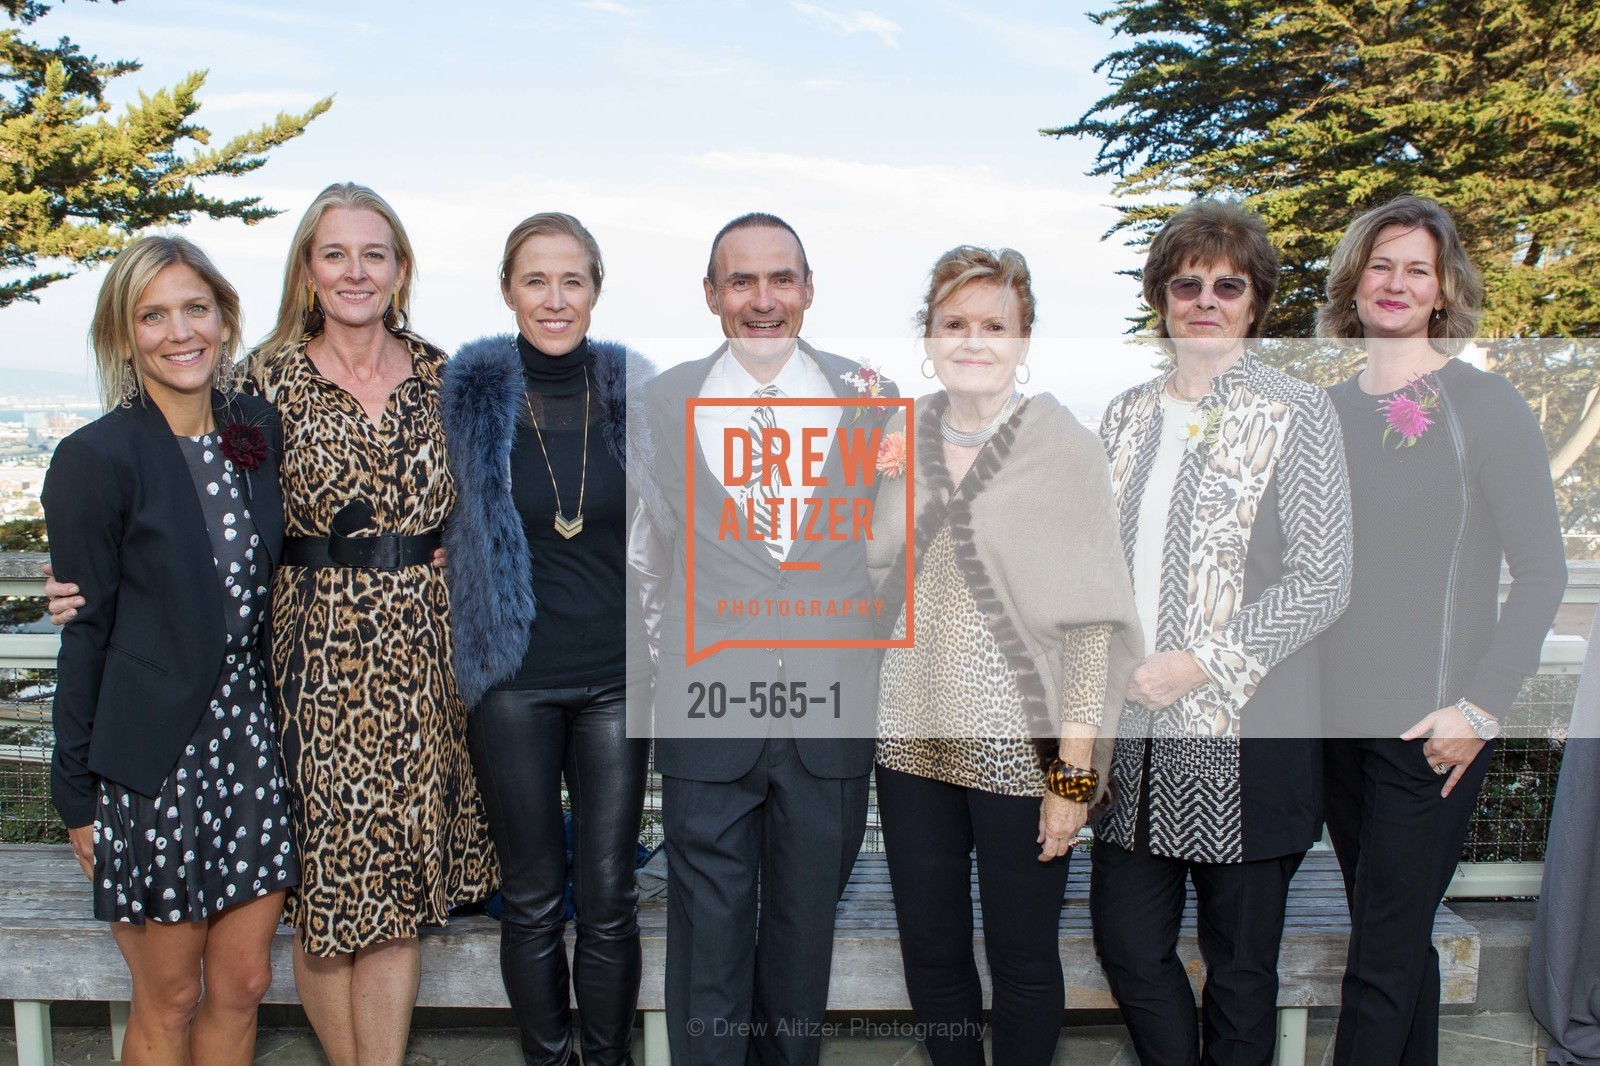 Leith Barry, Tricia Sellman, Palmer Weiss, Matt O'Grady, Connie Goodyear Baron, Nancy Conner, Beth Roy Jenkyn, SAKS FIFTH AVENUE Hosts The GLAAD GALA Kick-Off Party, US, September 12th, 2014,Drew Altizer, Drew Altizer Photography, full-service agency, private events, San Francisco photographer, photographer california